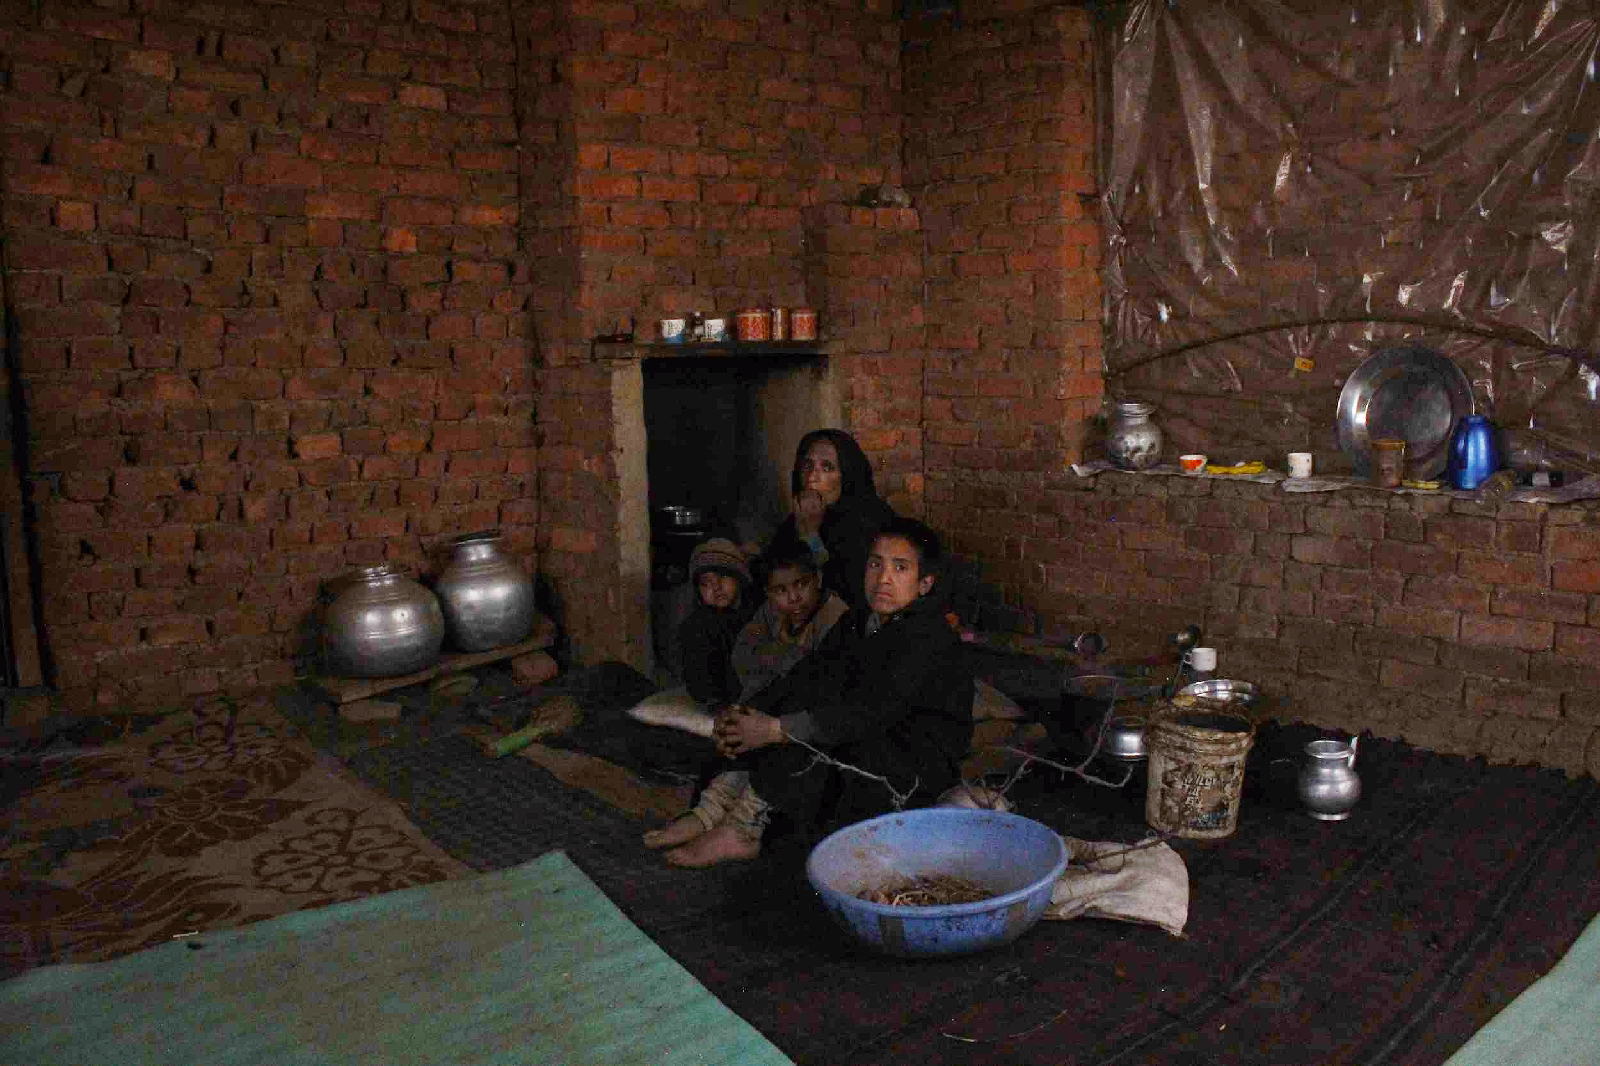 The family prepares their meals on traditional stove made of clay (called Daan in Kashmir) as they don't have any electricity connection.